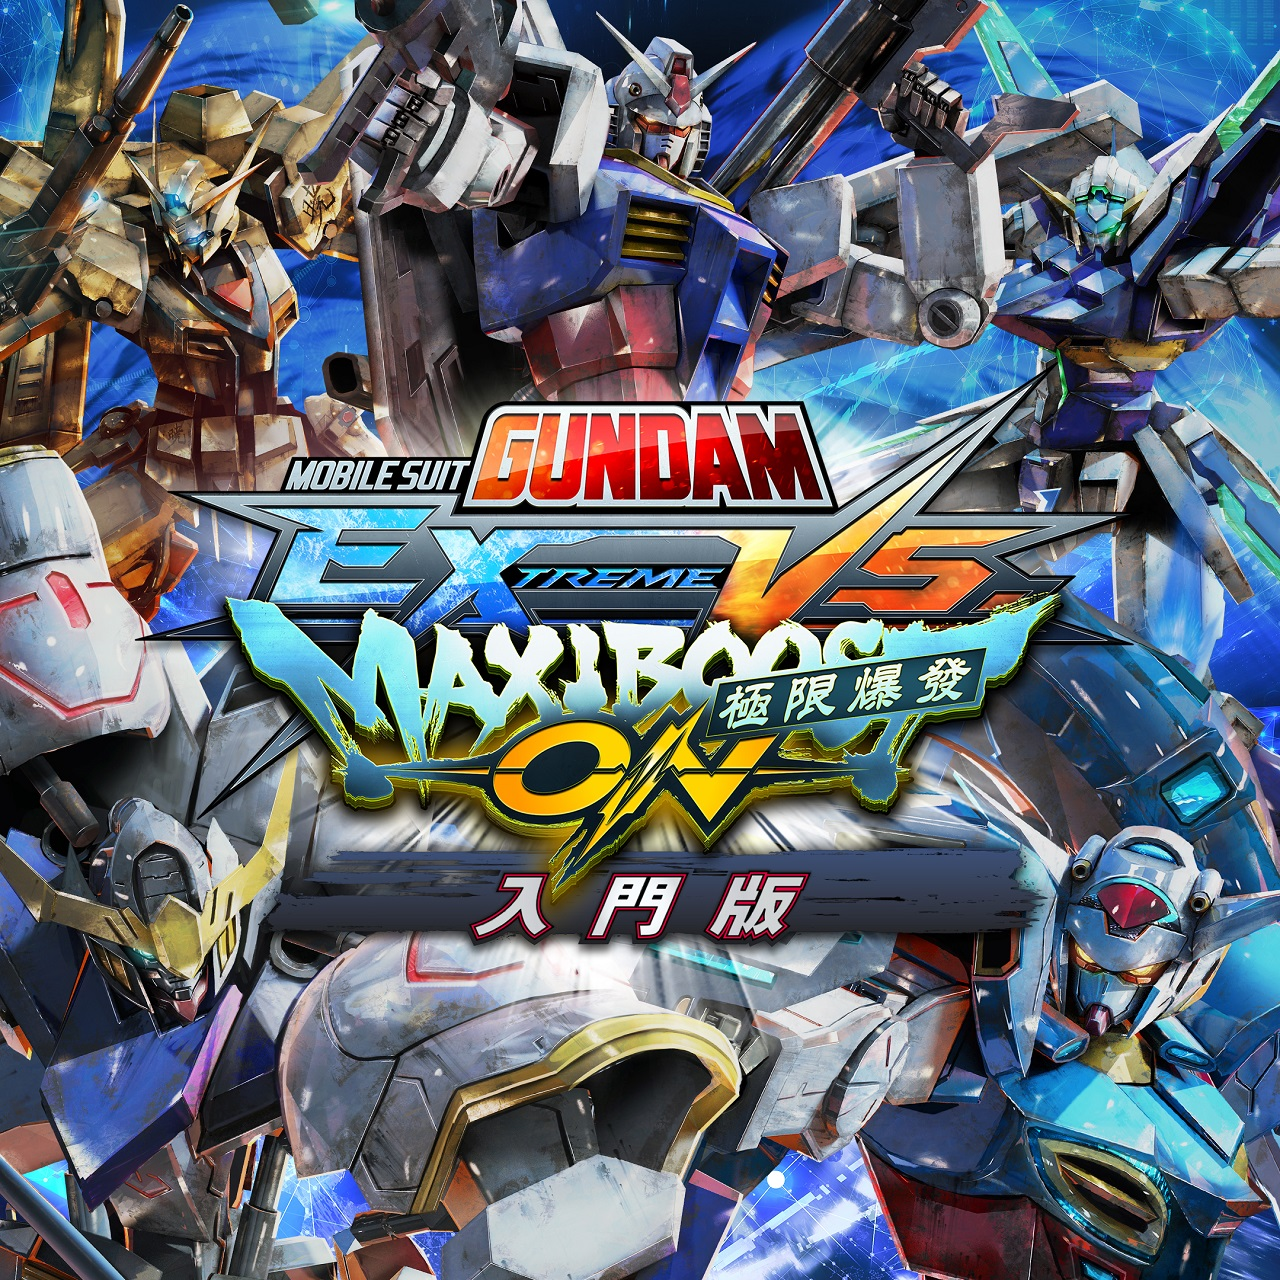 《MOBILE SUIT GUNDAM EXTREME VS. 極限爆發》入門版今日登場